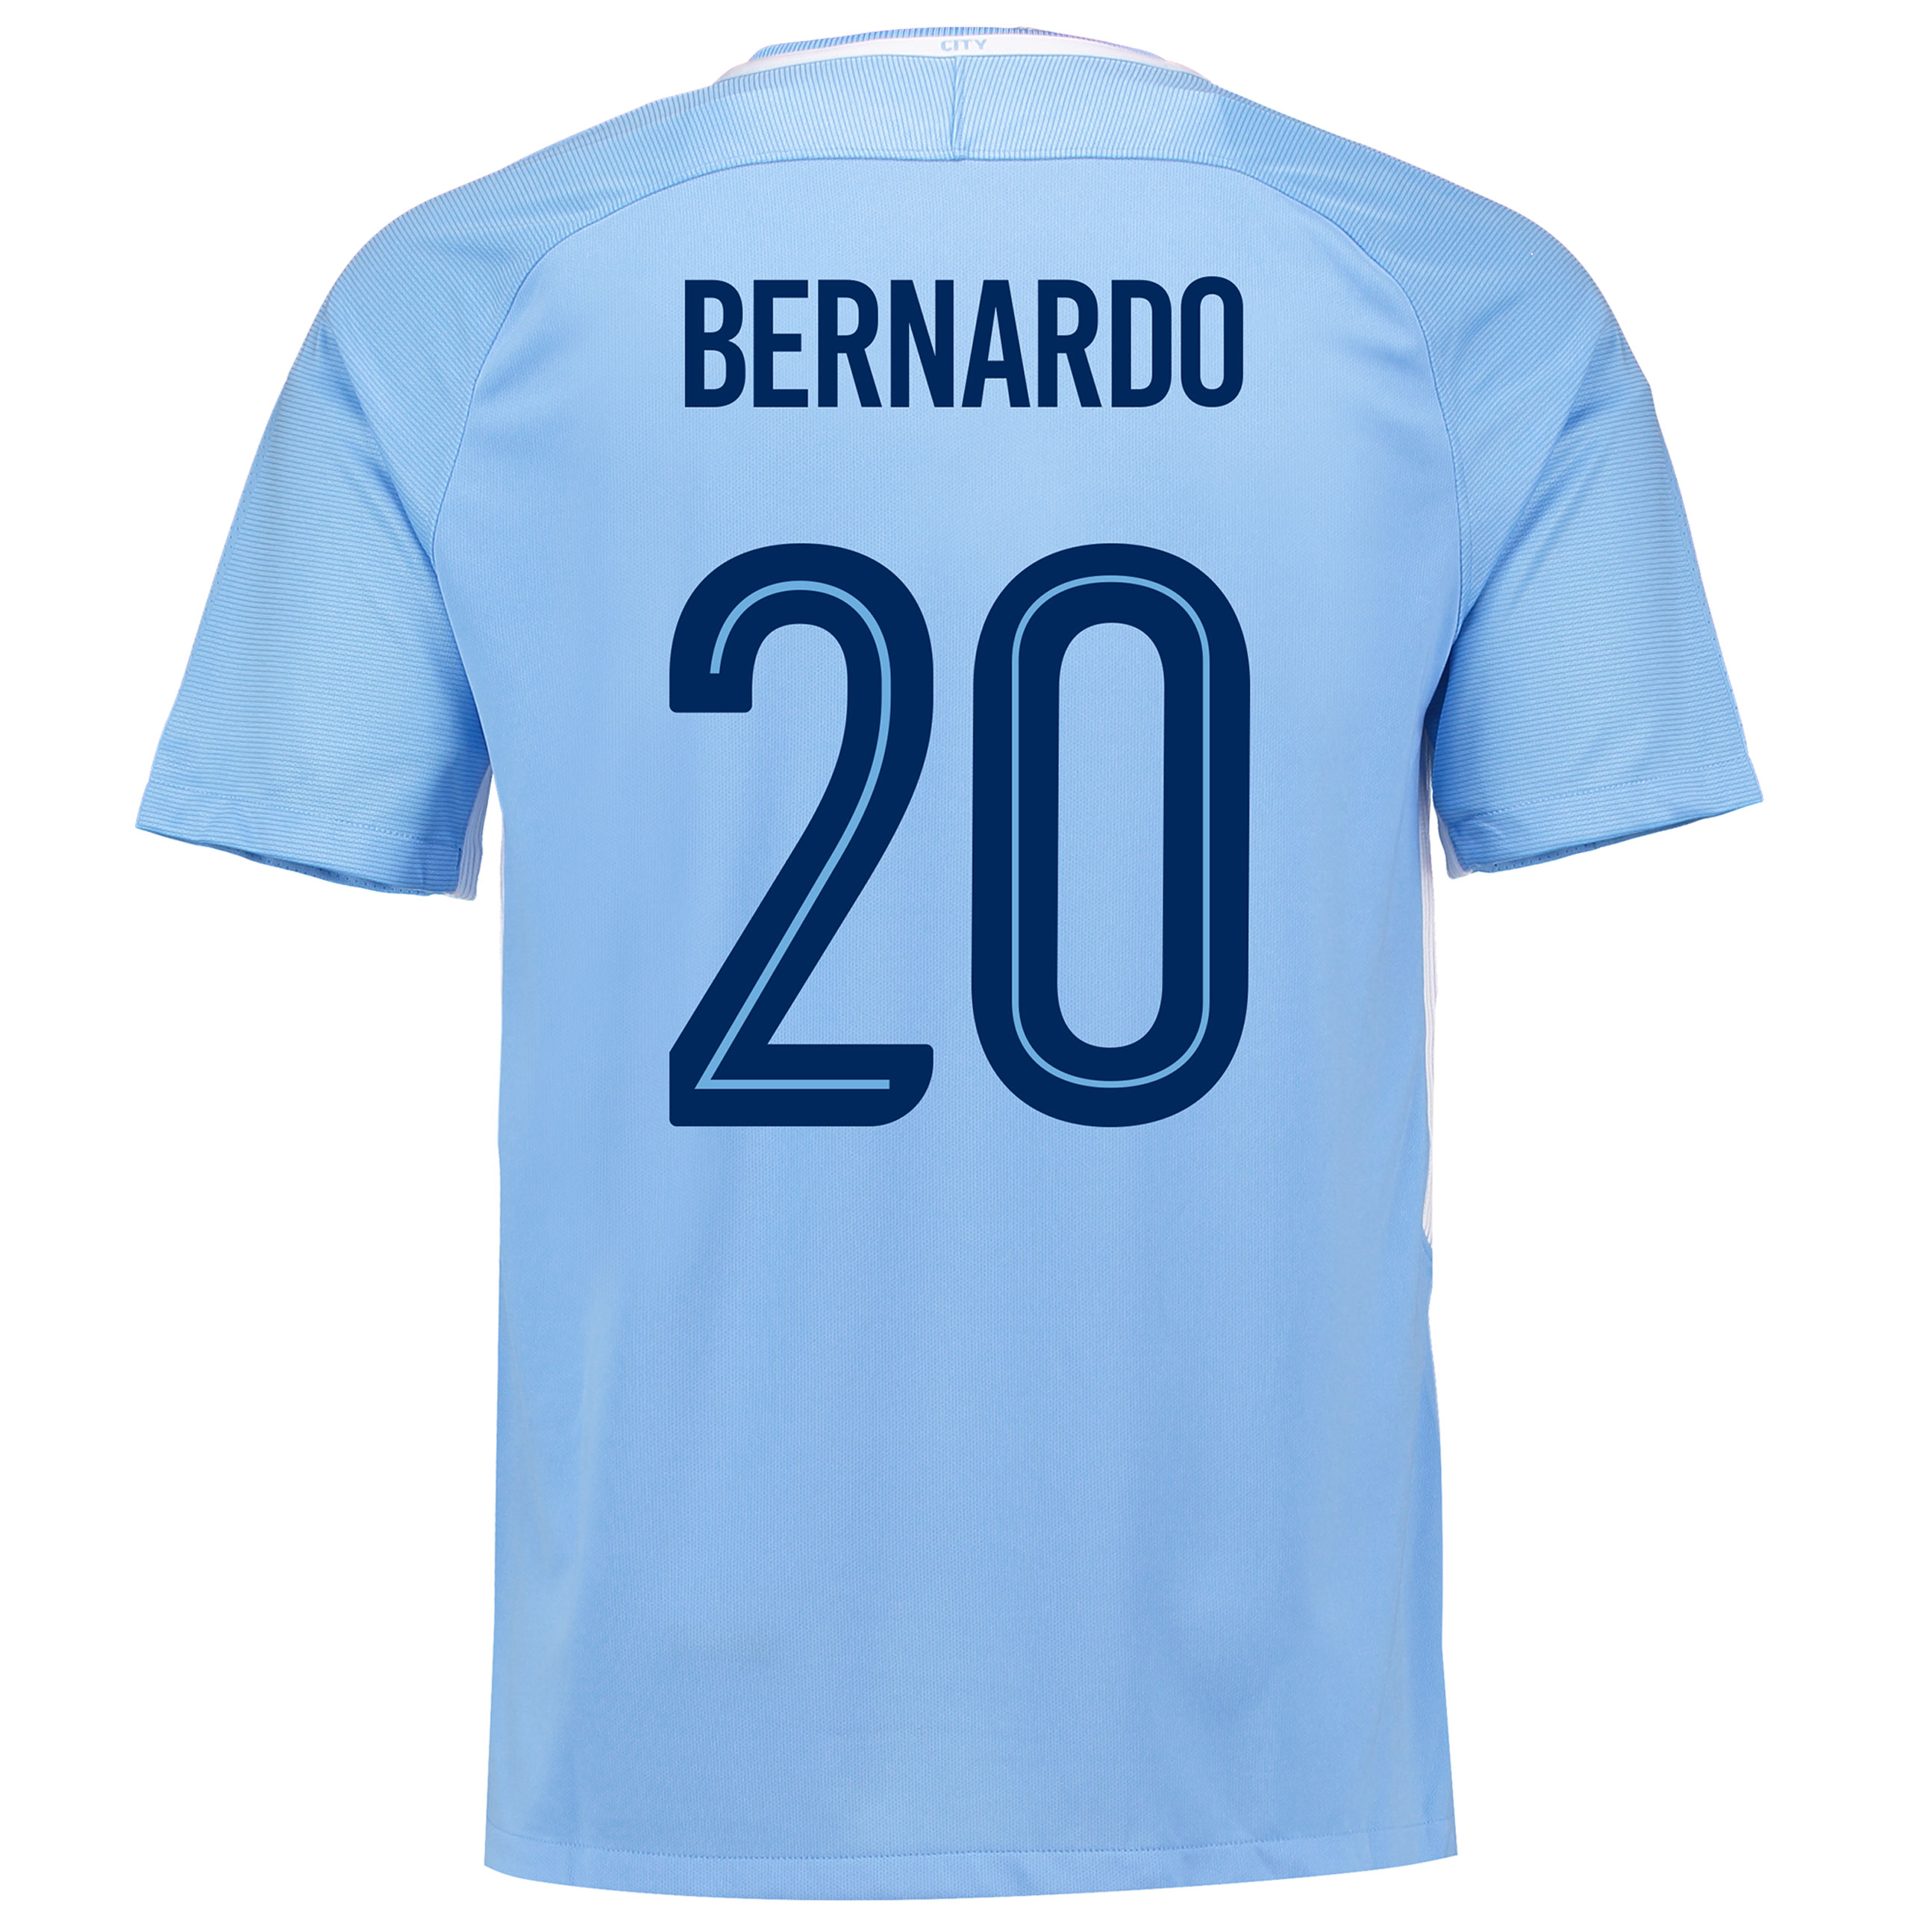 Manchester City Home Stadium Cup Shirt 2017-18 with Bernardo 20 printi